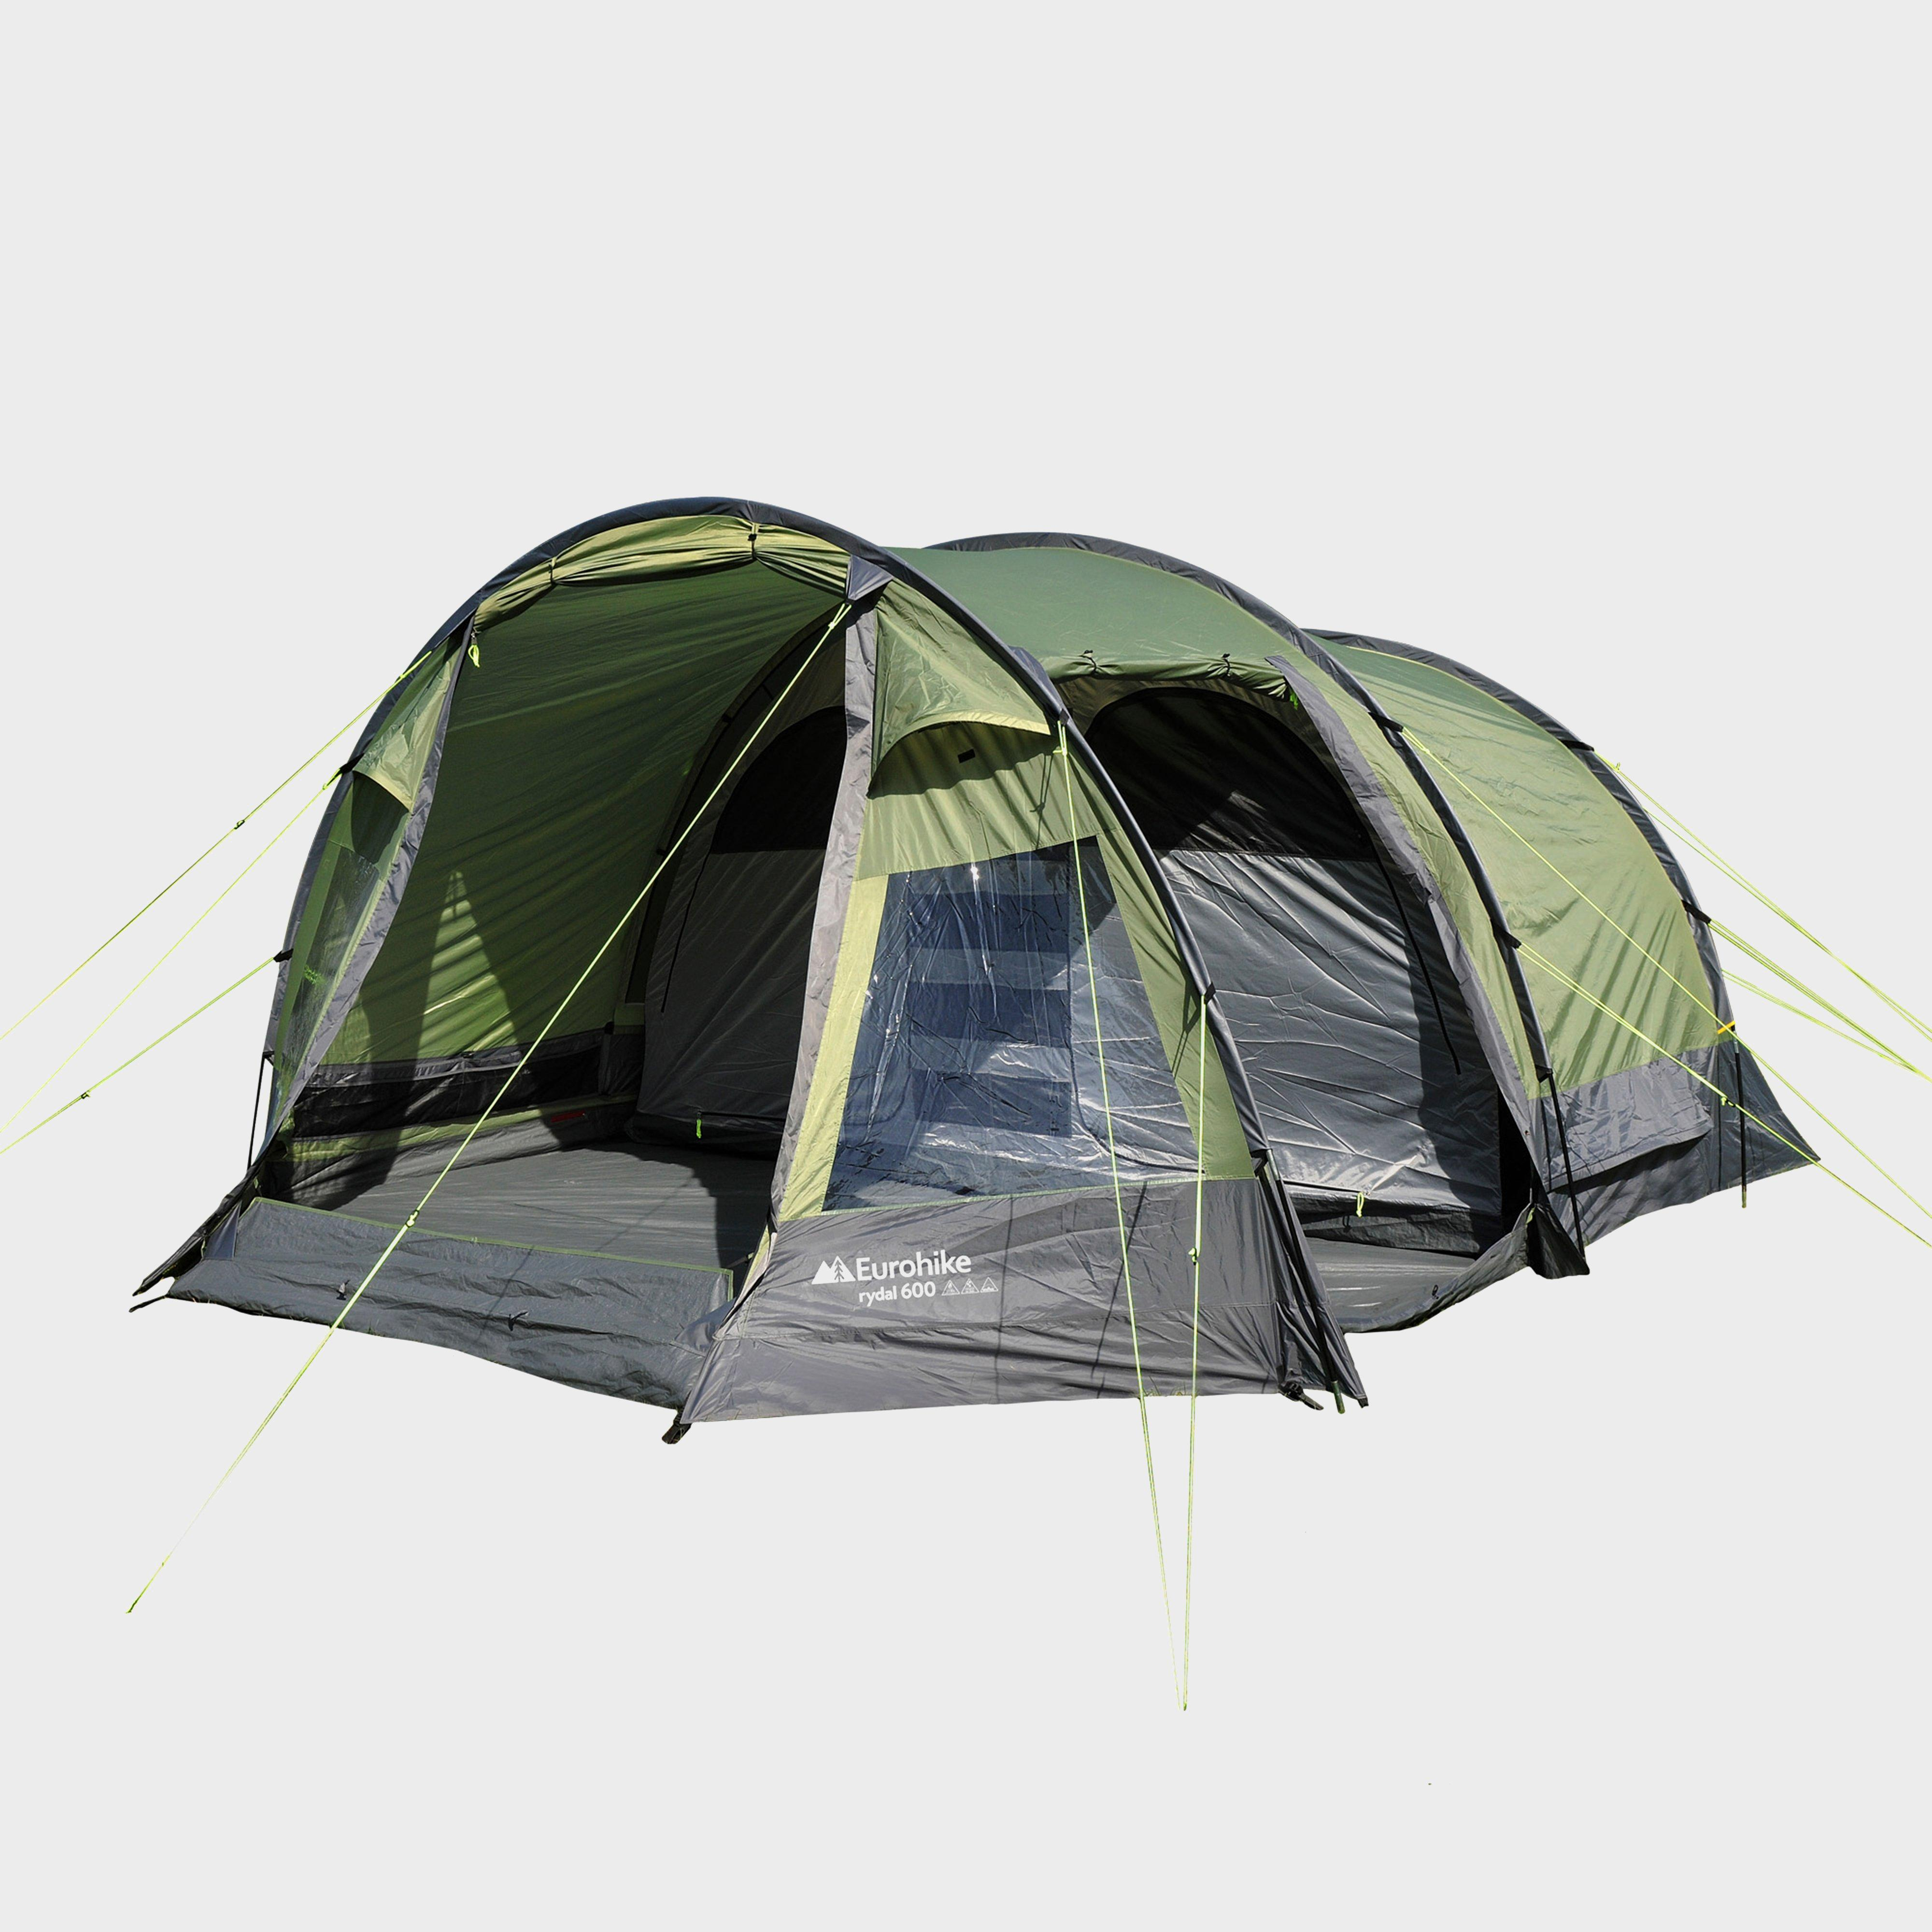 Eurohike Rydal 600 6 Person Tent Green